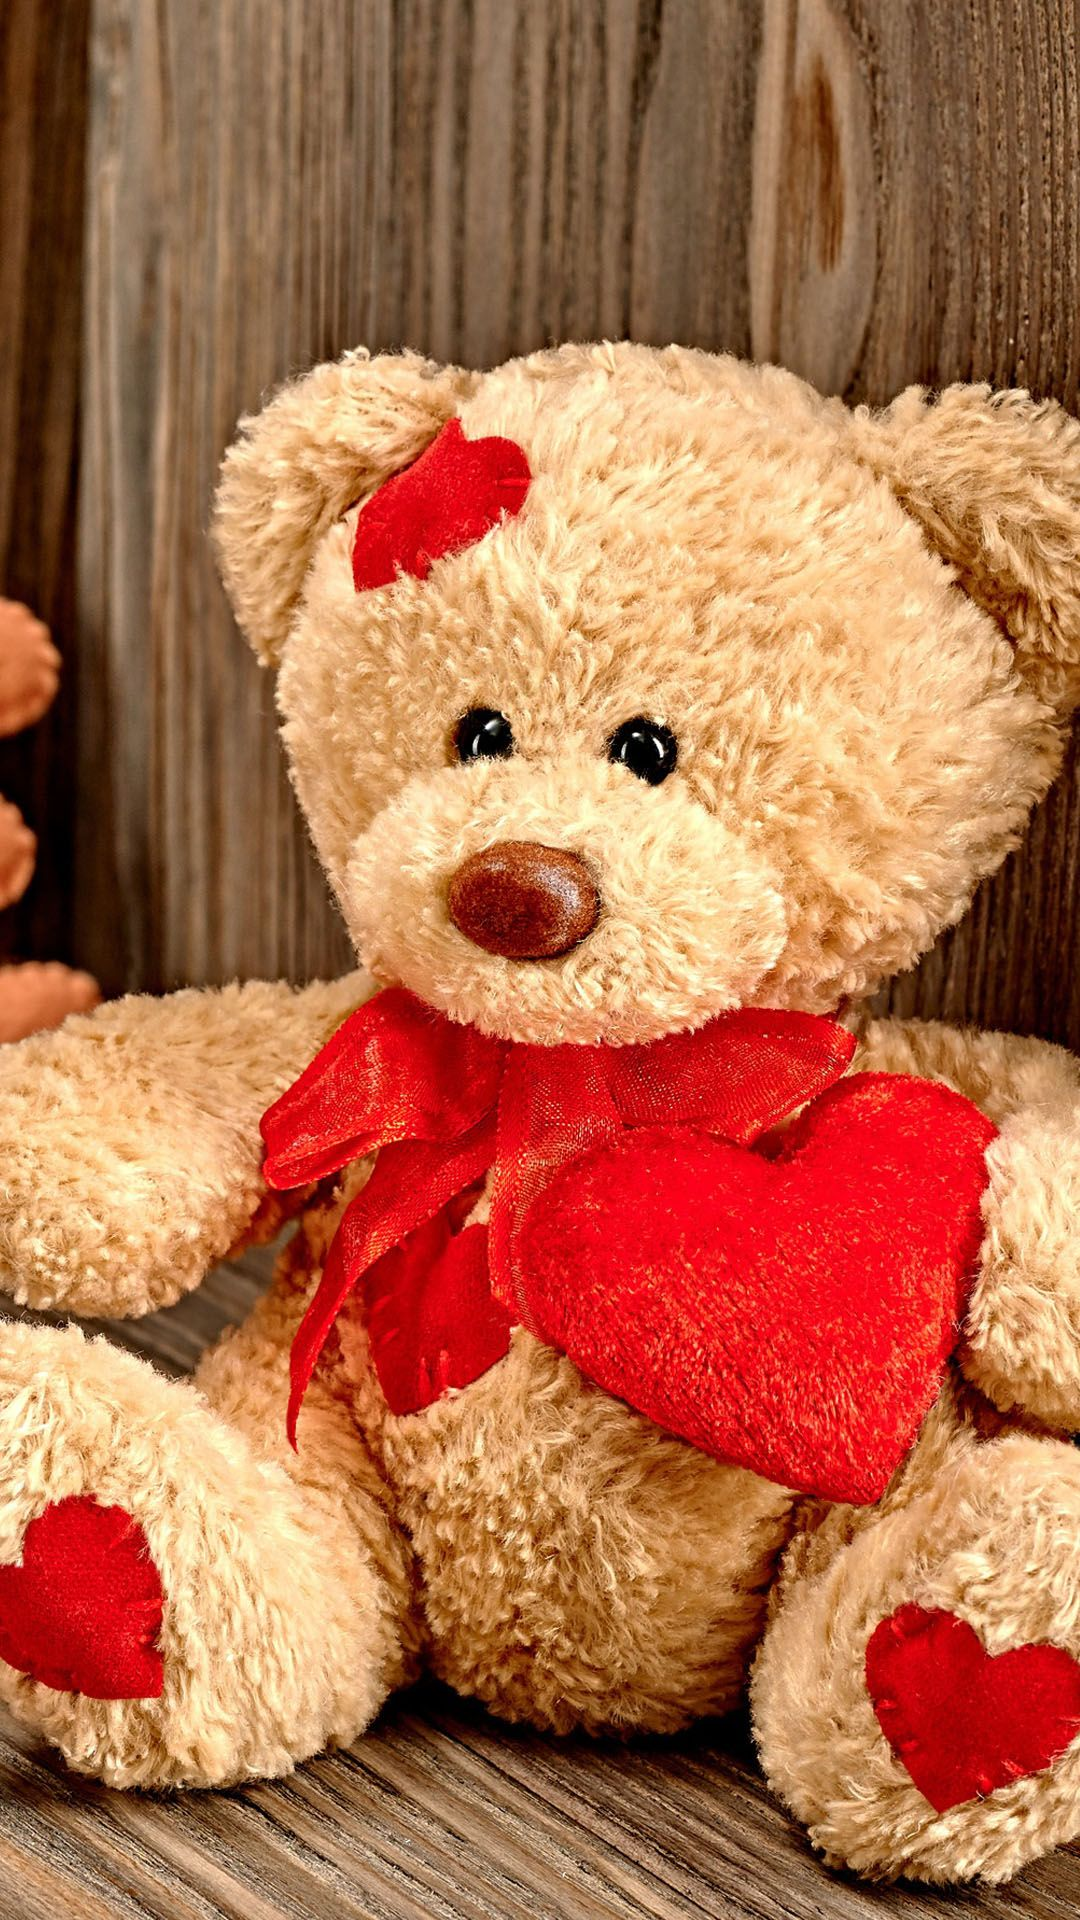 Teddy bear love iphone 6 and 6 plus hd wallpapers daily iphone 65 teddy bear love iphone 6 and 6 plus hd wallpapers voltagebd Gallery